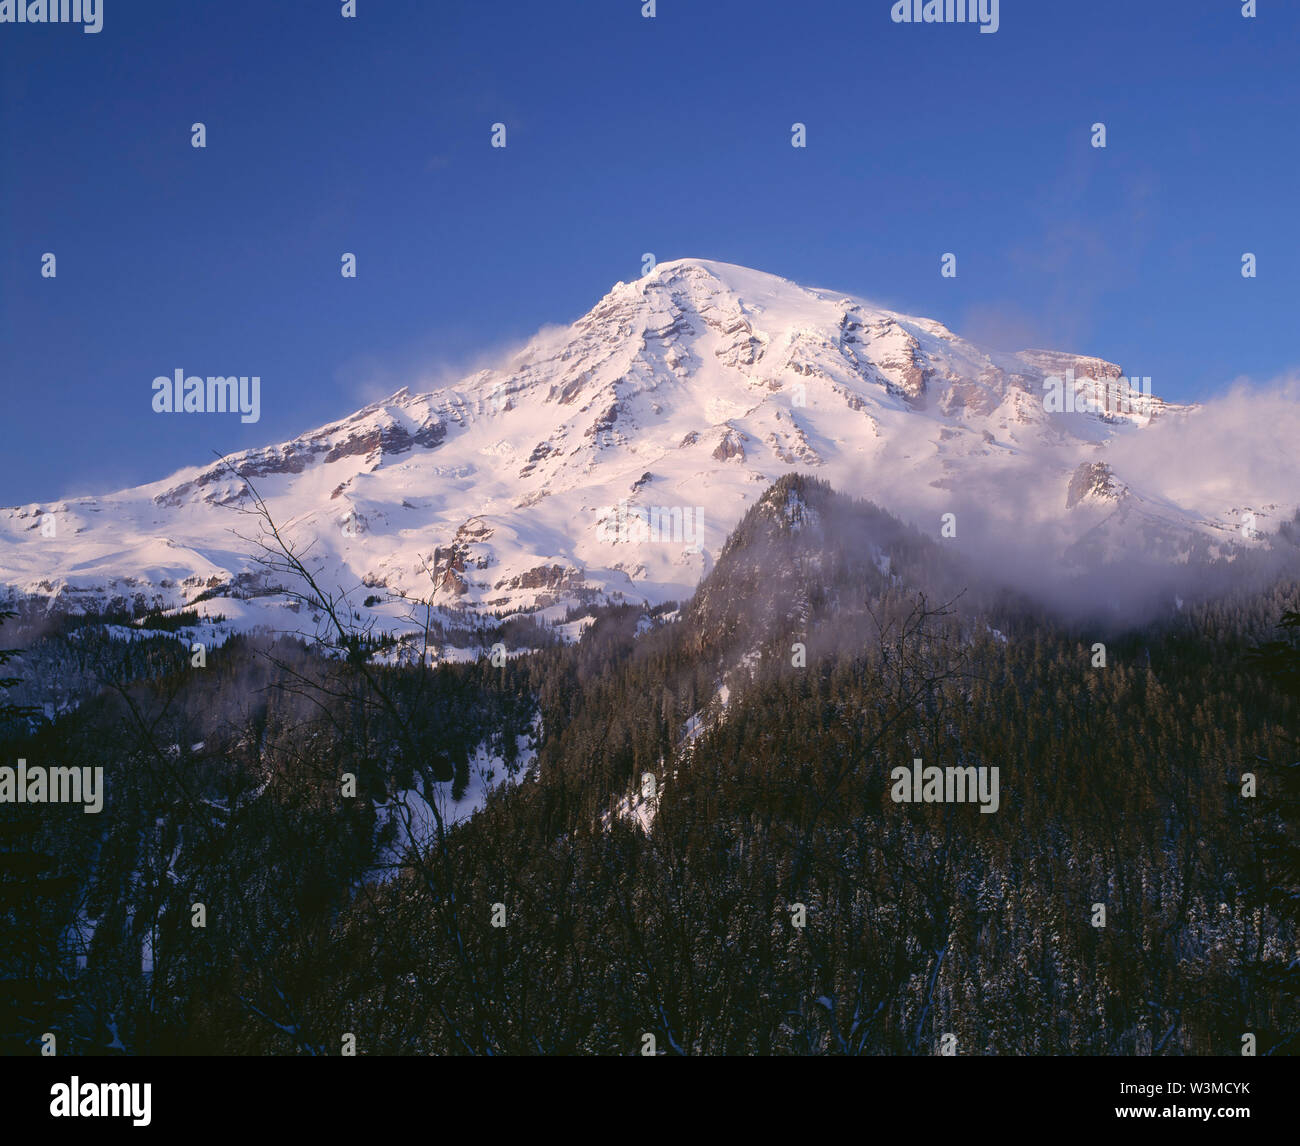 USA, Washington, Mt. Rainier National Park, Soft sunset light on snowy south side of Mt. Rainier in winter with swirling fog. Stock Photo